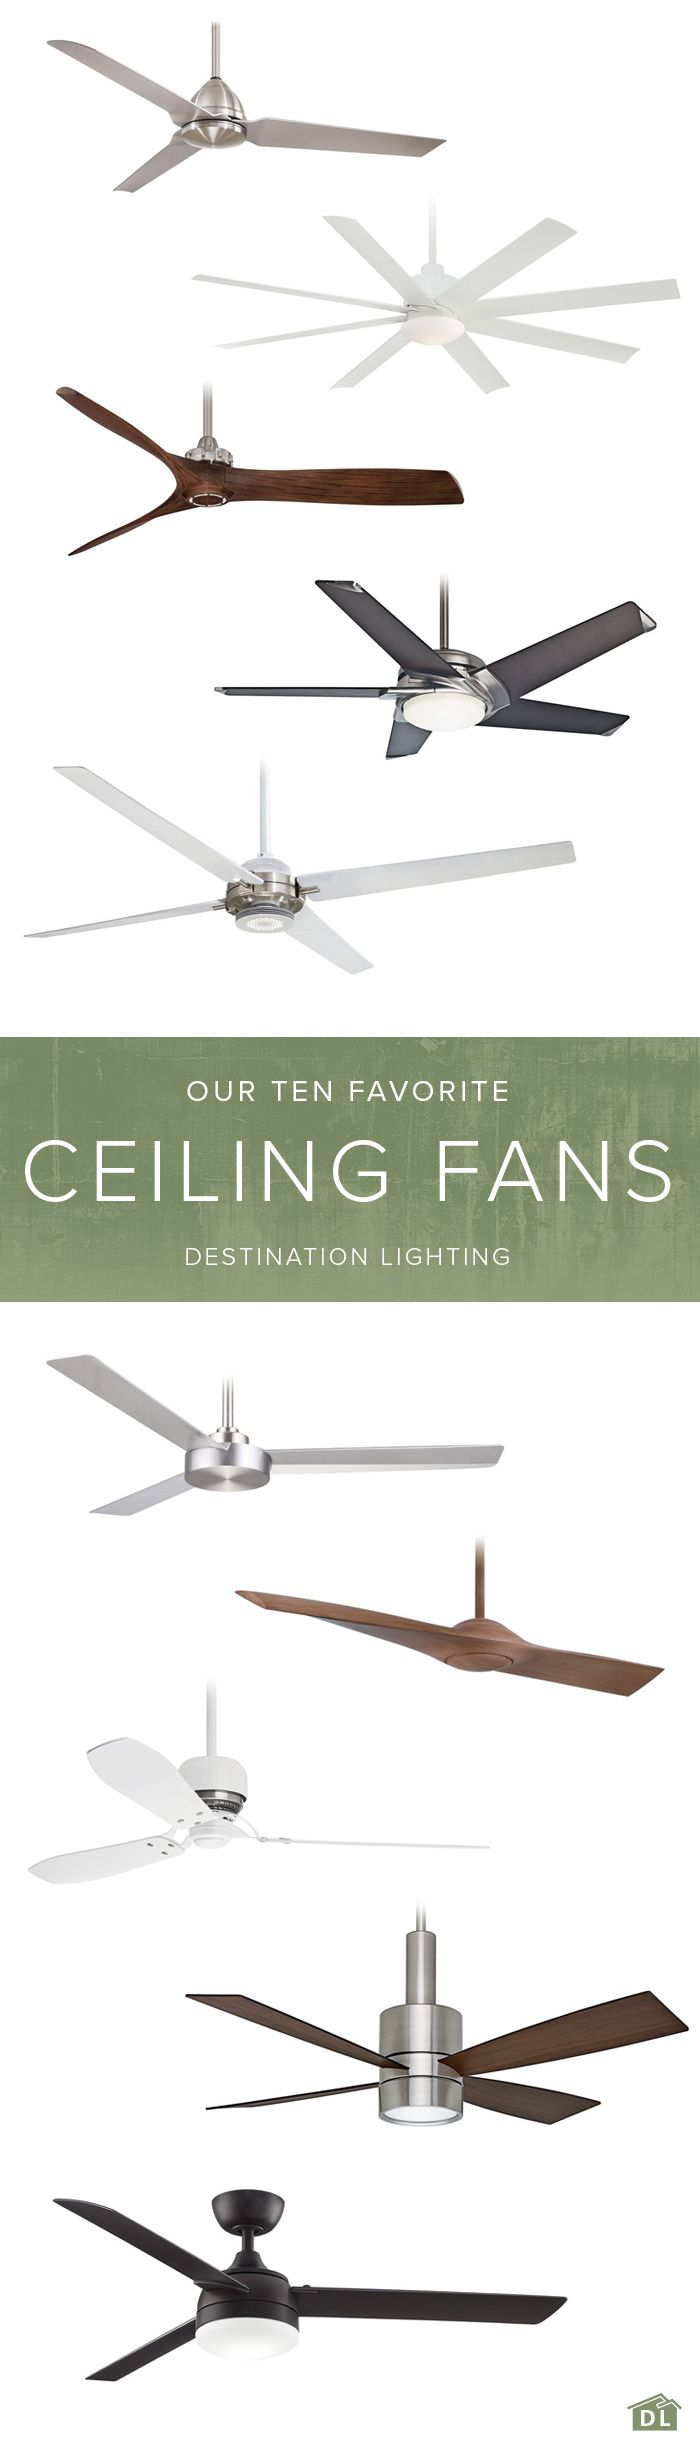 8 Best Ceiling Fans Images On Pinterest Blankets Ceilings And Fan Wiring Diagram Litex Hunter Get Prepared For That Summer Heat With These Ten Gorgeous Check Out Our